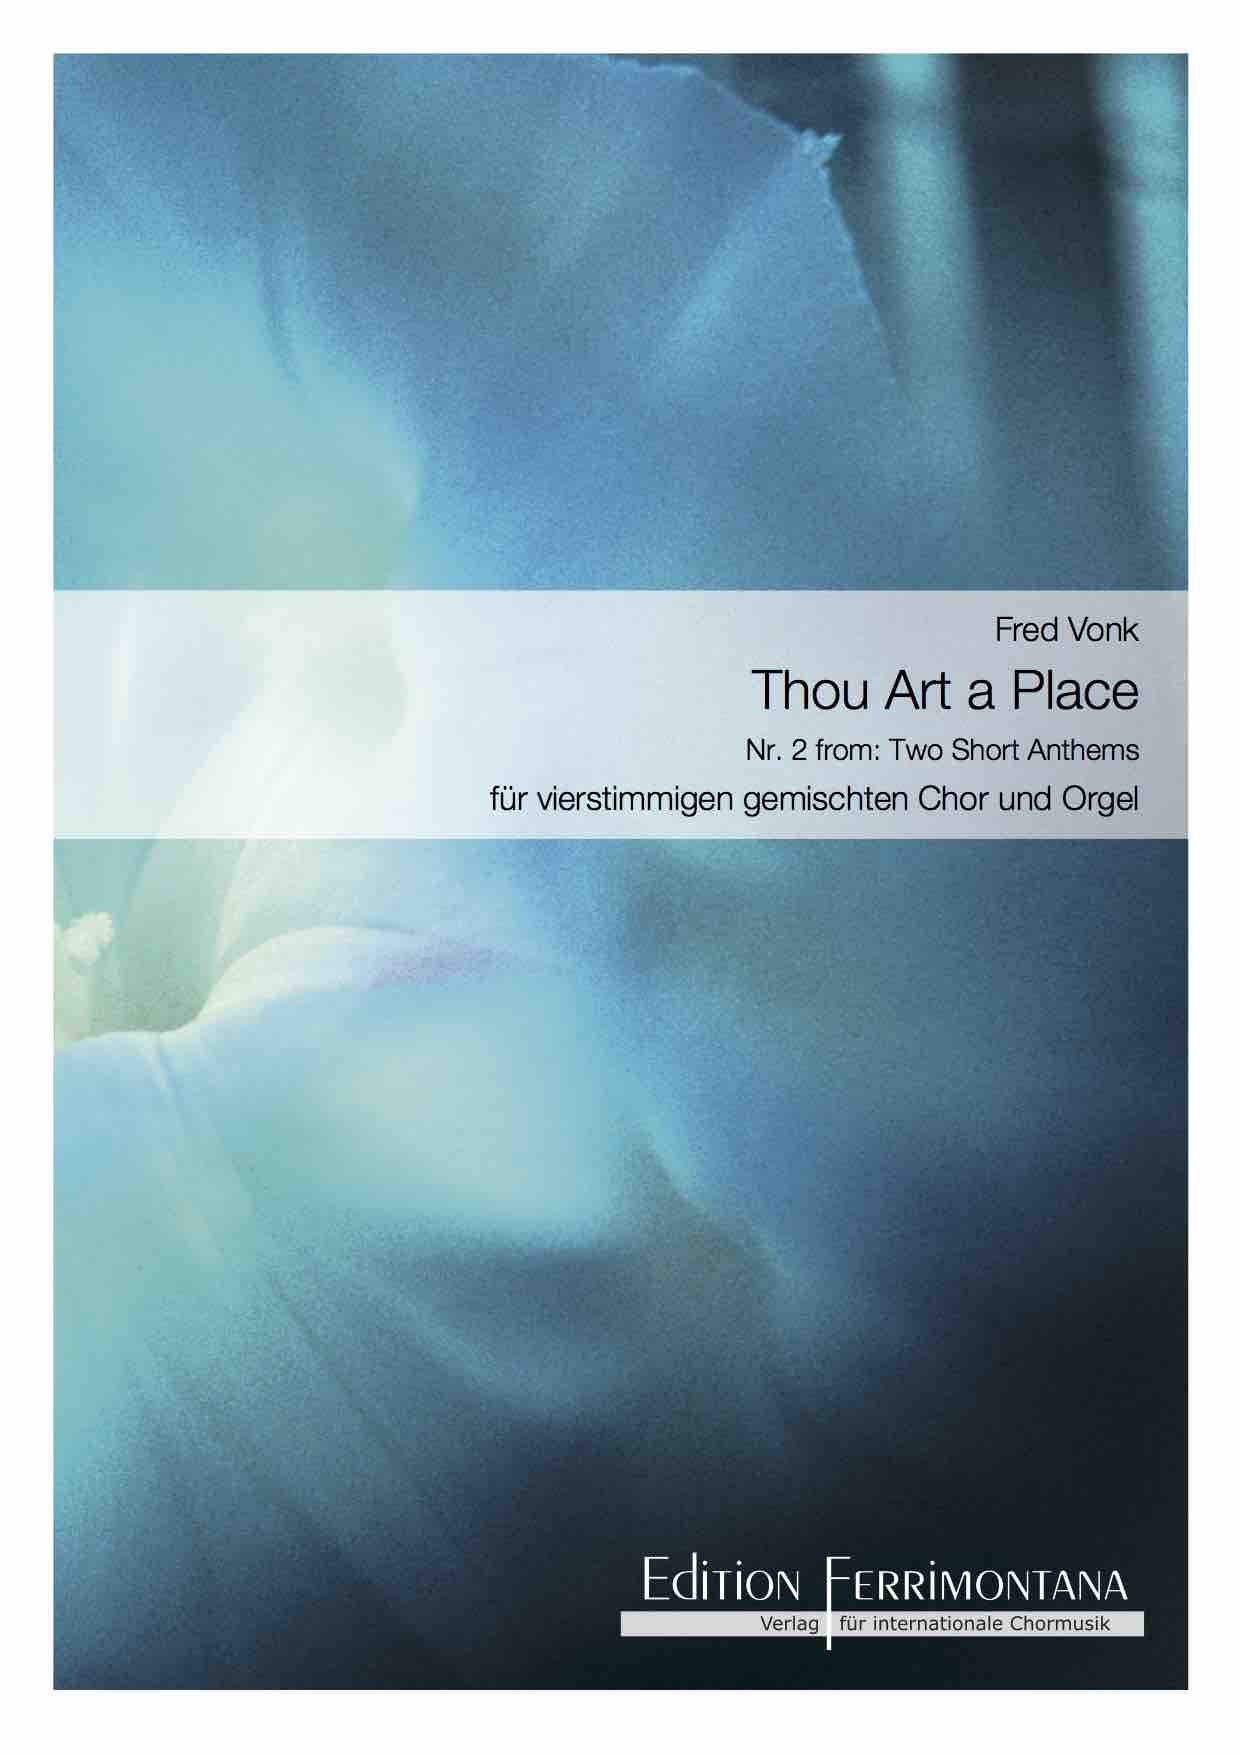 Vonk: Thou art a place - Nr 2 from: Two short anthems